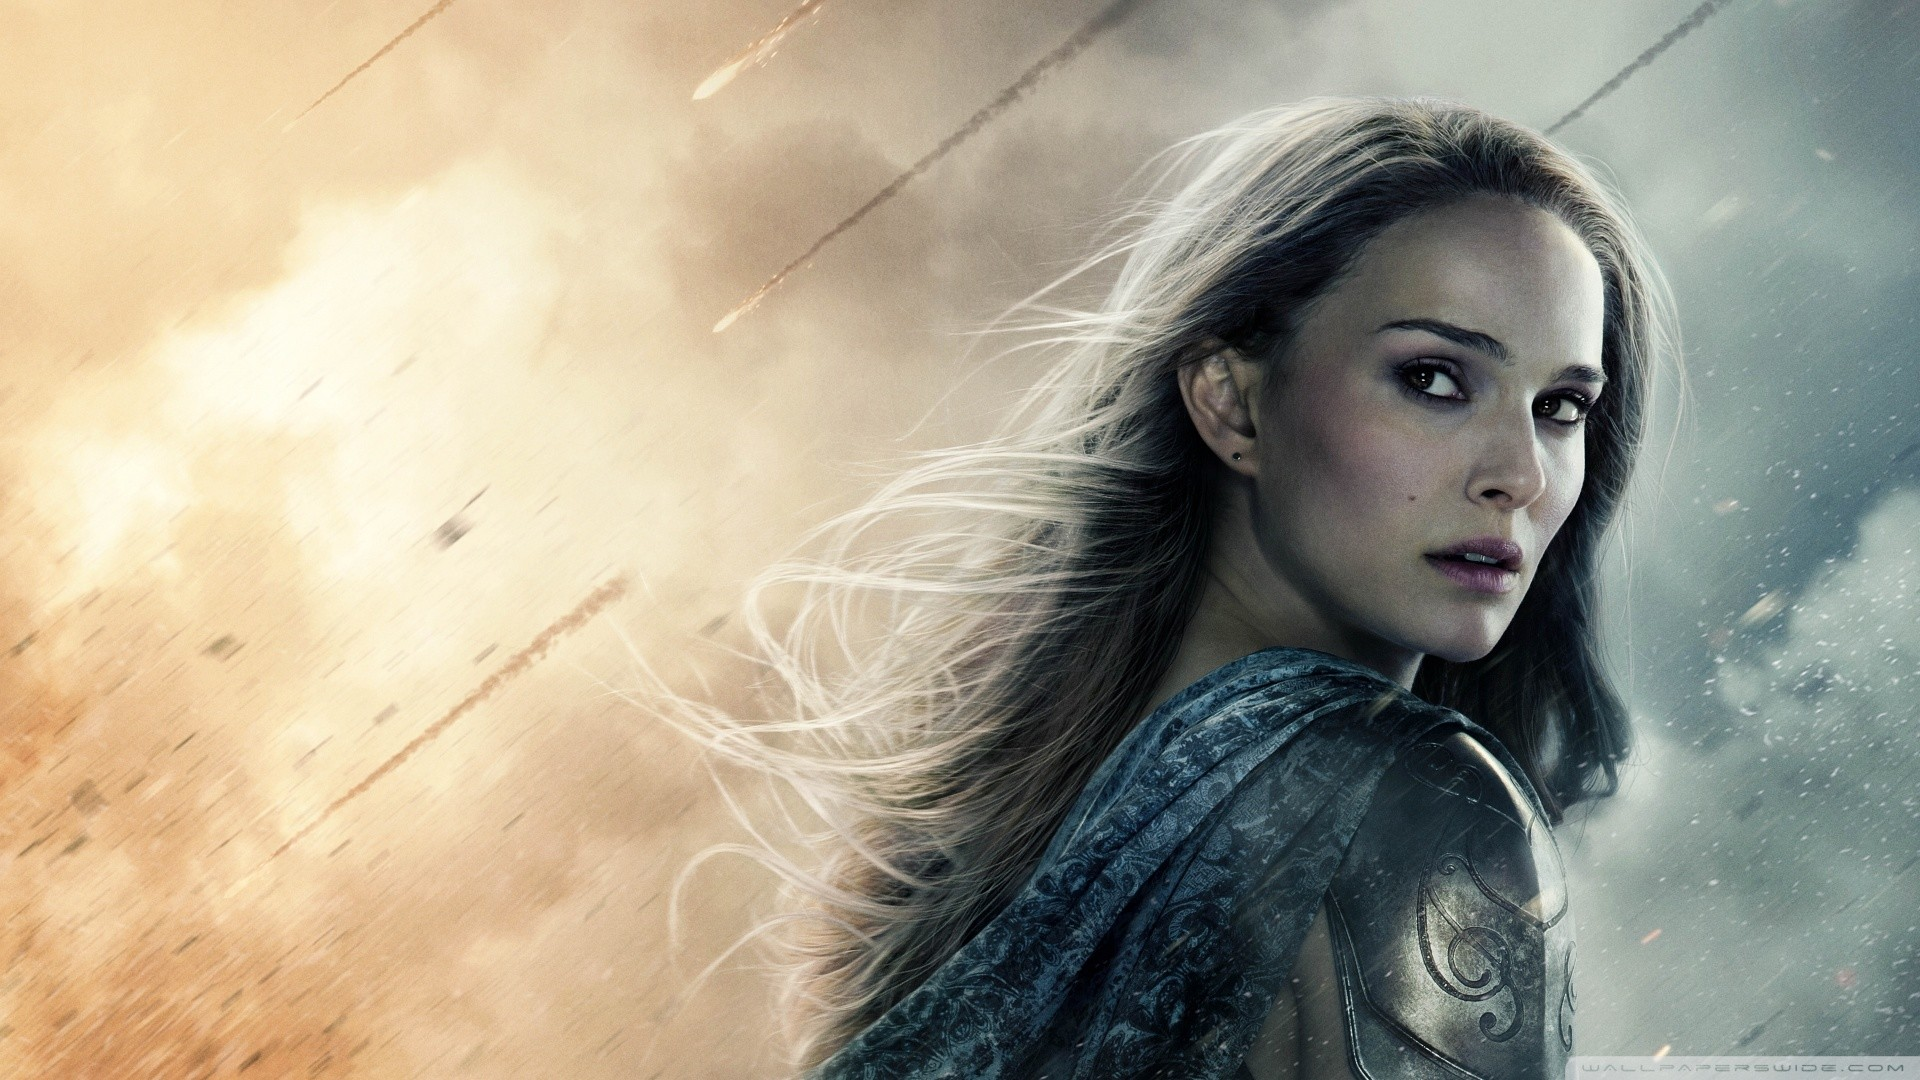 Res: 1920x1080, Marvel Live-action Movies images thor dark world HD wallpaper and  background photos